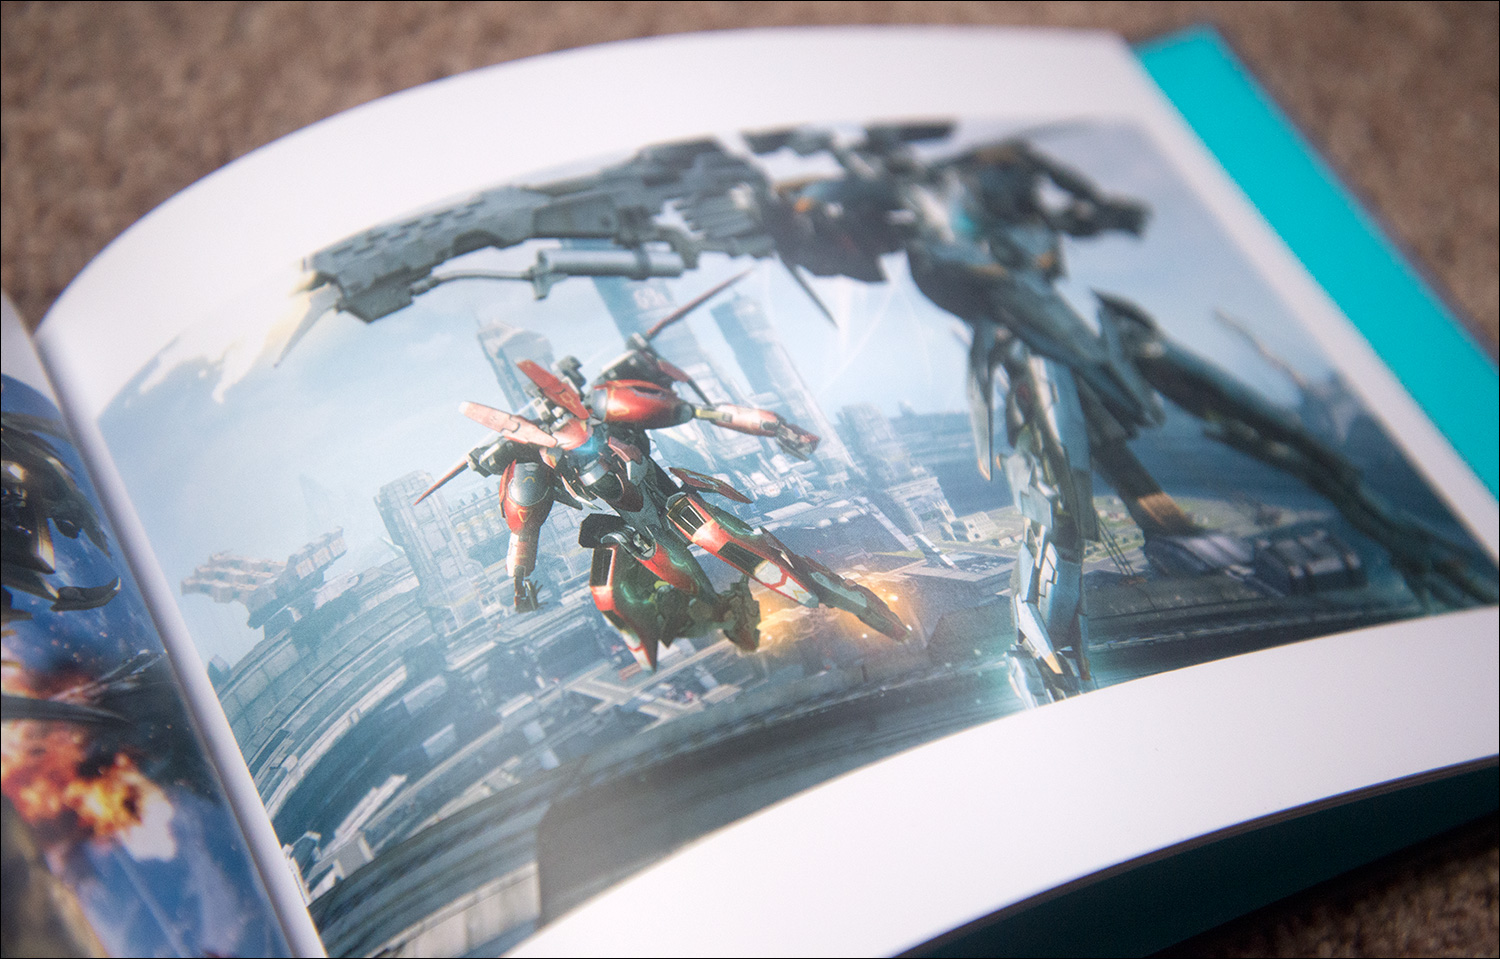 Xenoblade chronicles x limited edition video game shelf lastly the bundle includes a plastic bag that contains a double sided poster and a map of the game world the poster has some cool artwork on it the same gumiabroncs Choice Image